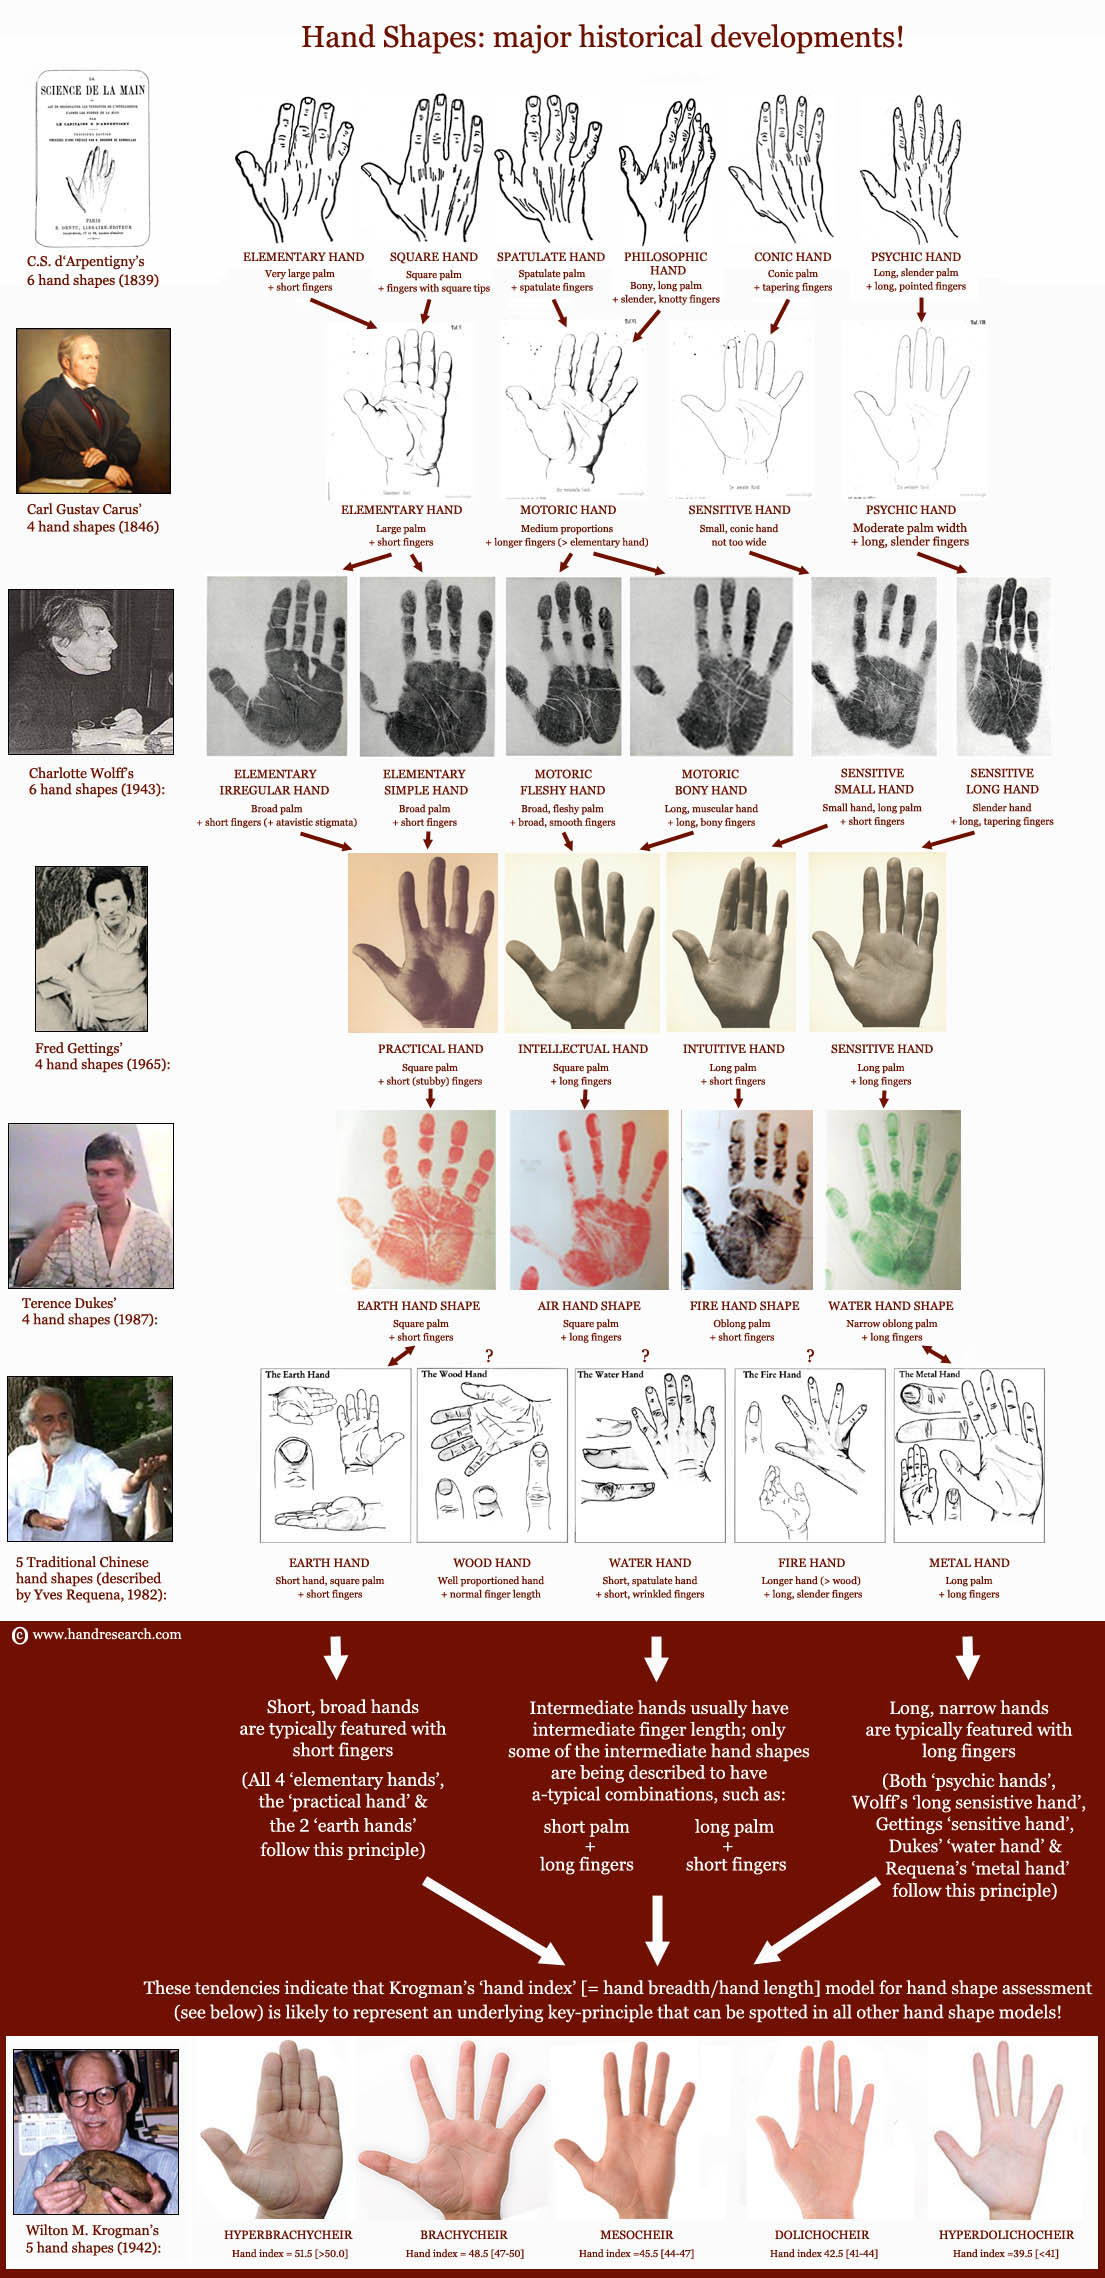 Donald Trump: into the hands of the new US president! Hand-shapes-historical-developments